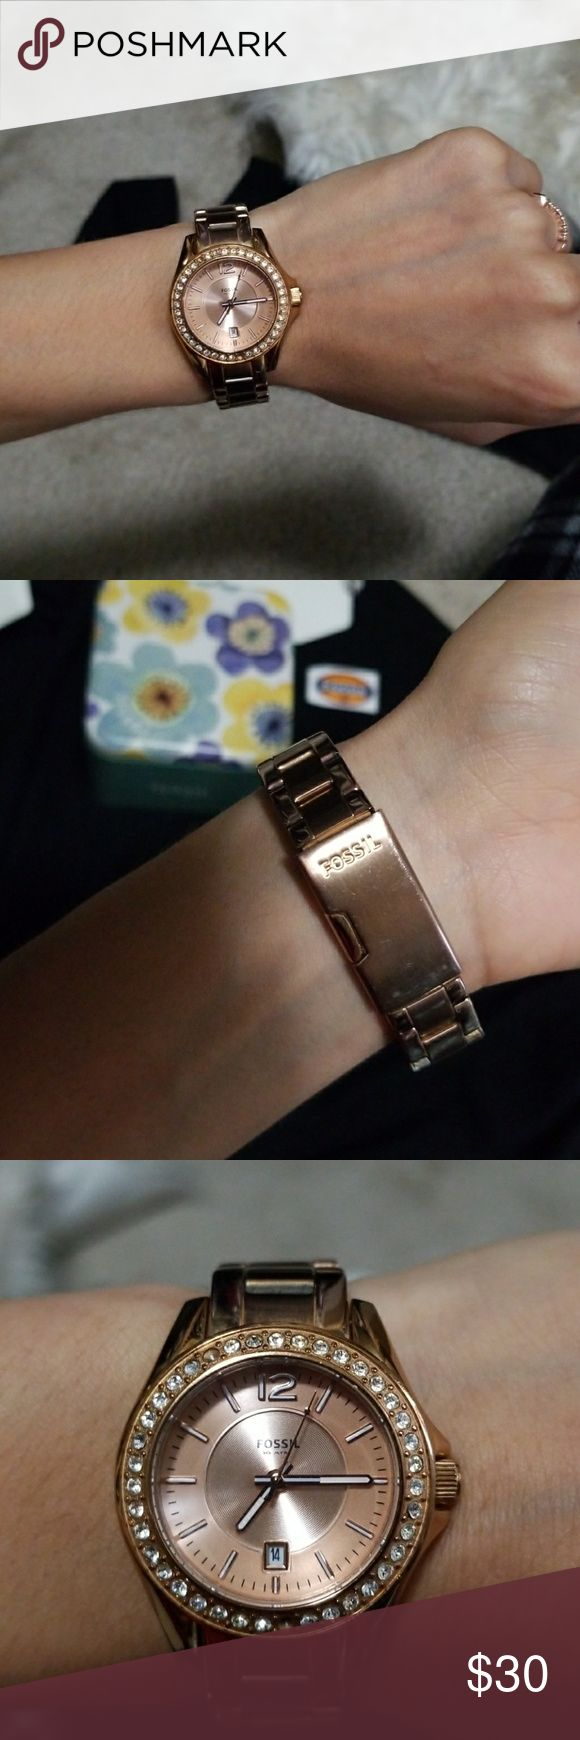 Rose gold Fossil watch Rose gold, comes with additional chains to make it wider. It has some wear, see last photo. Missing 2 stones on face and needs battery replaced. Fossil Accessories Watches